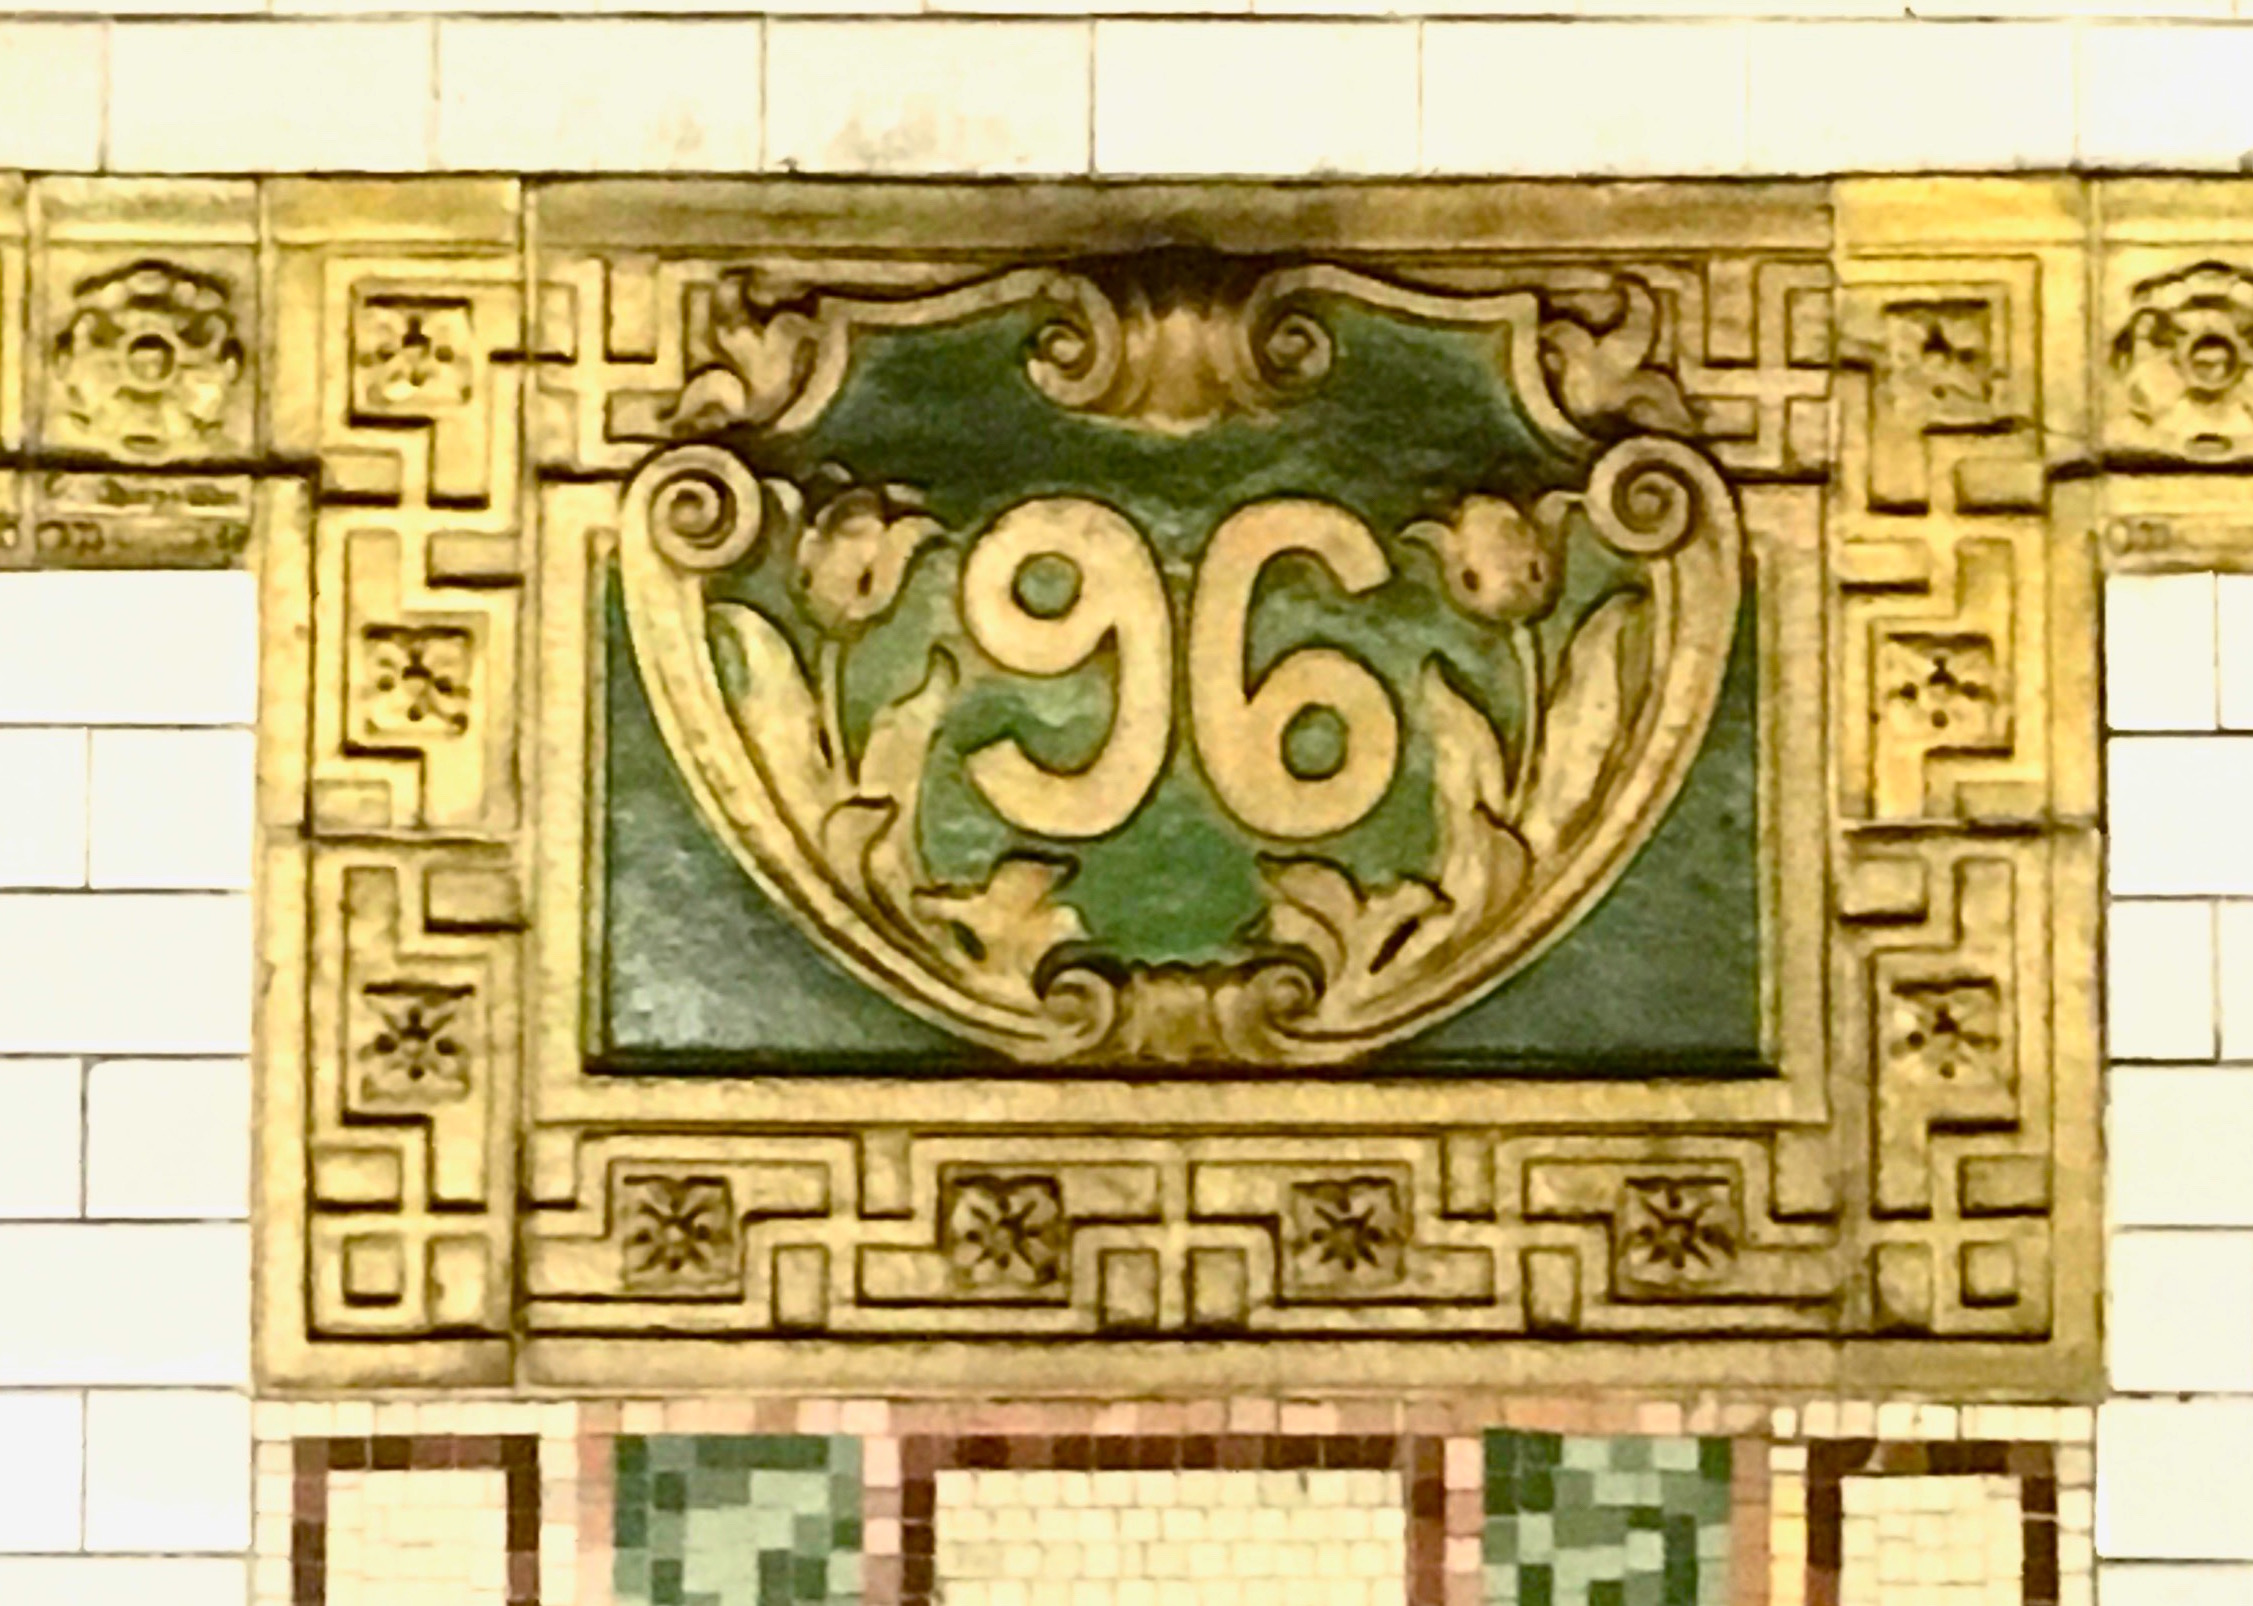 An Upper West Side Art Nouveau–like subway sign | Ephemeral New York